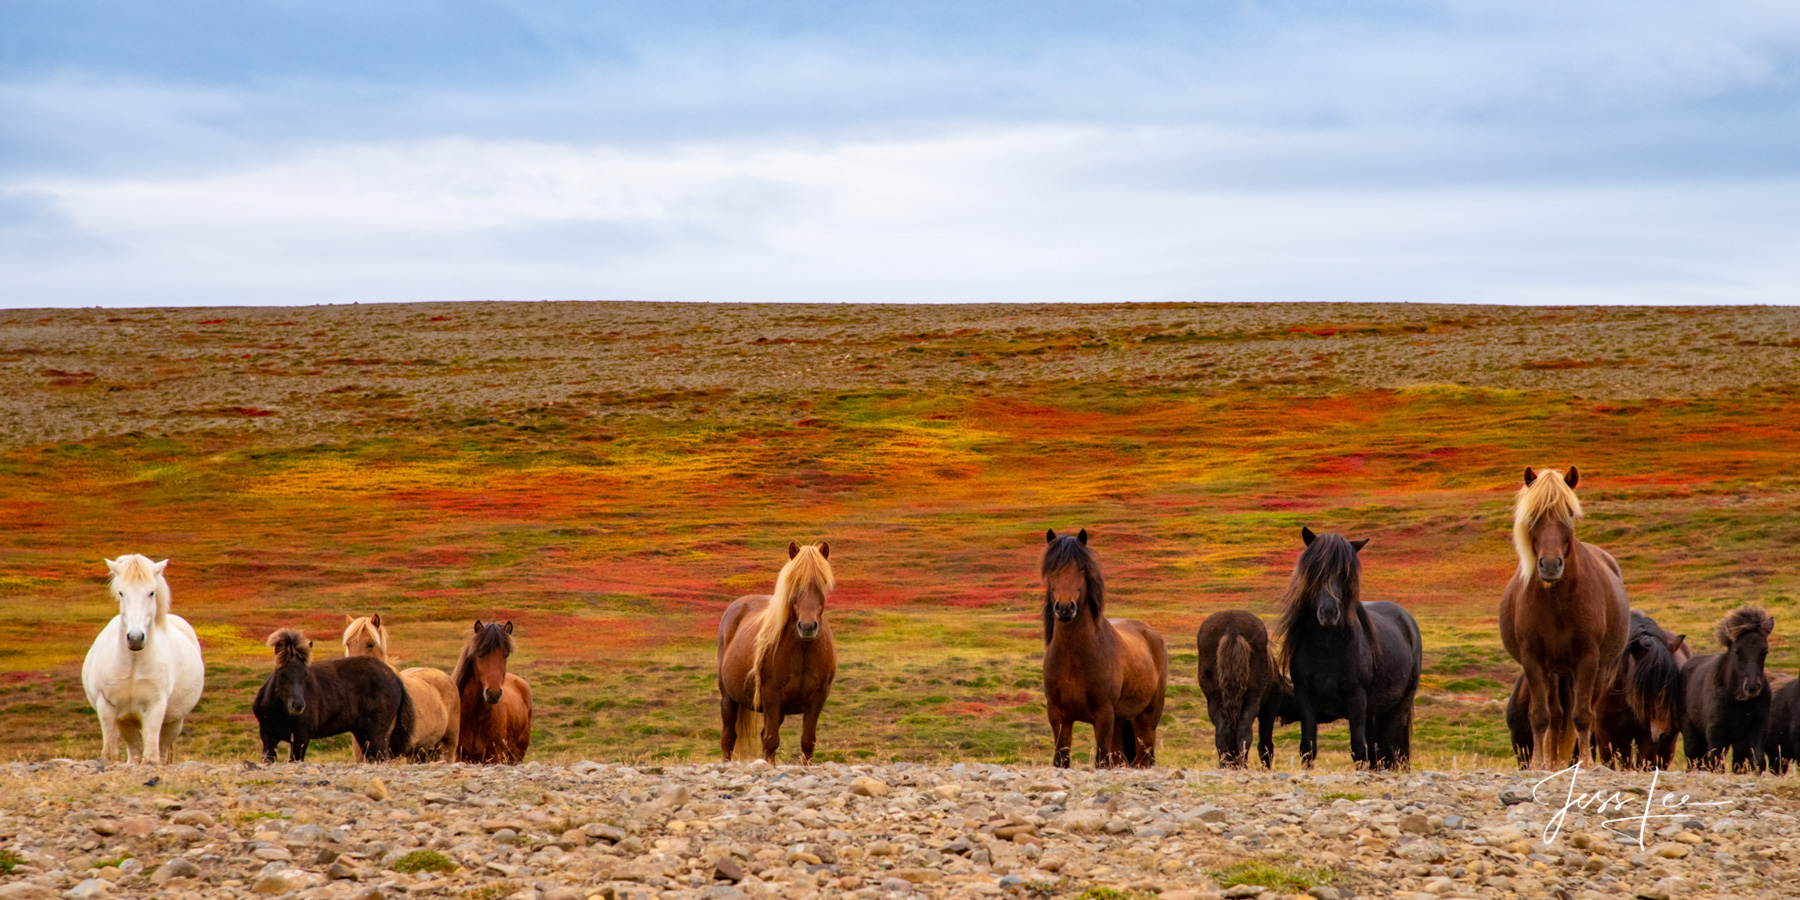 Limited Edition of 50 Exclusive high-resolution Museum Quality Fine Art Prints of Icelandic horses in this Panorama Photo. Photos...